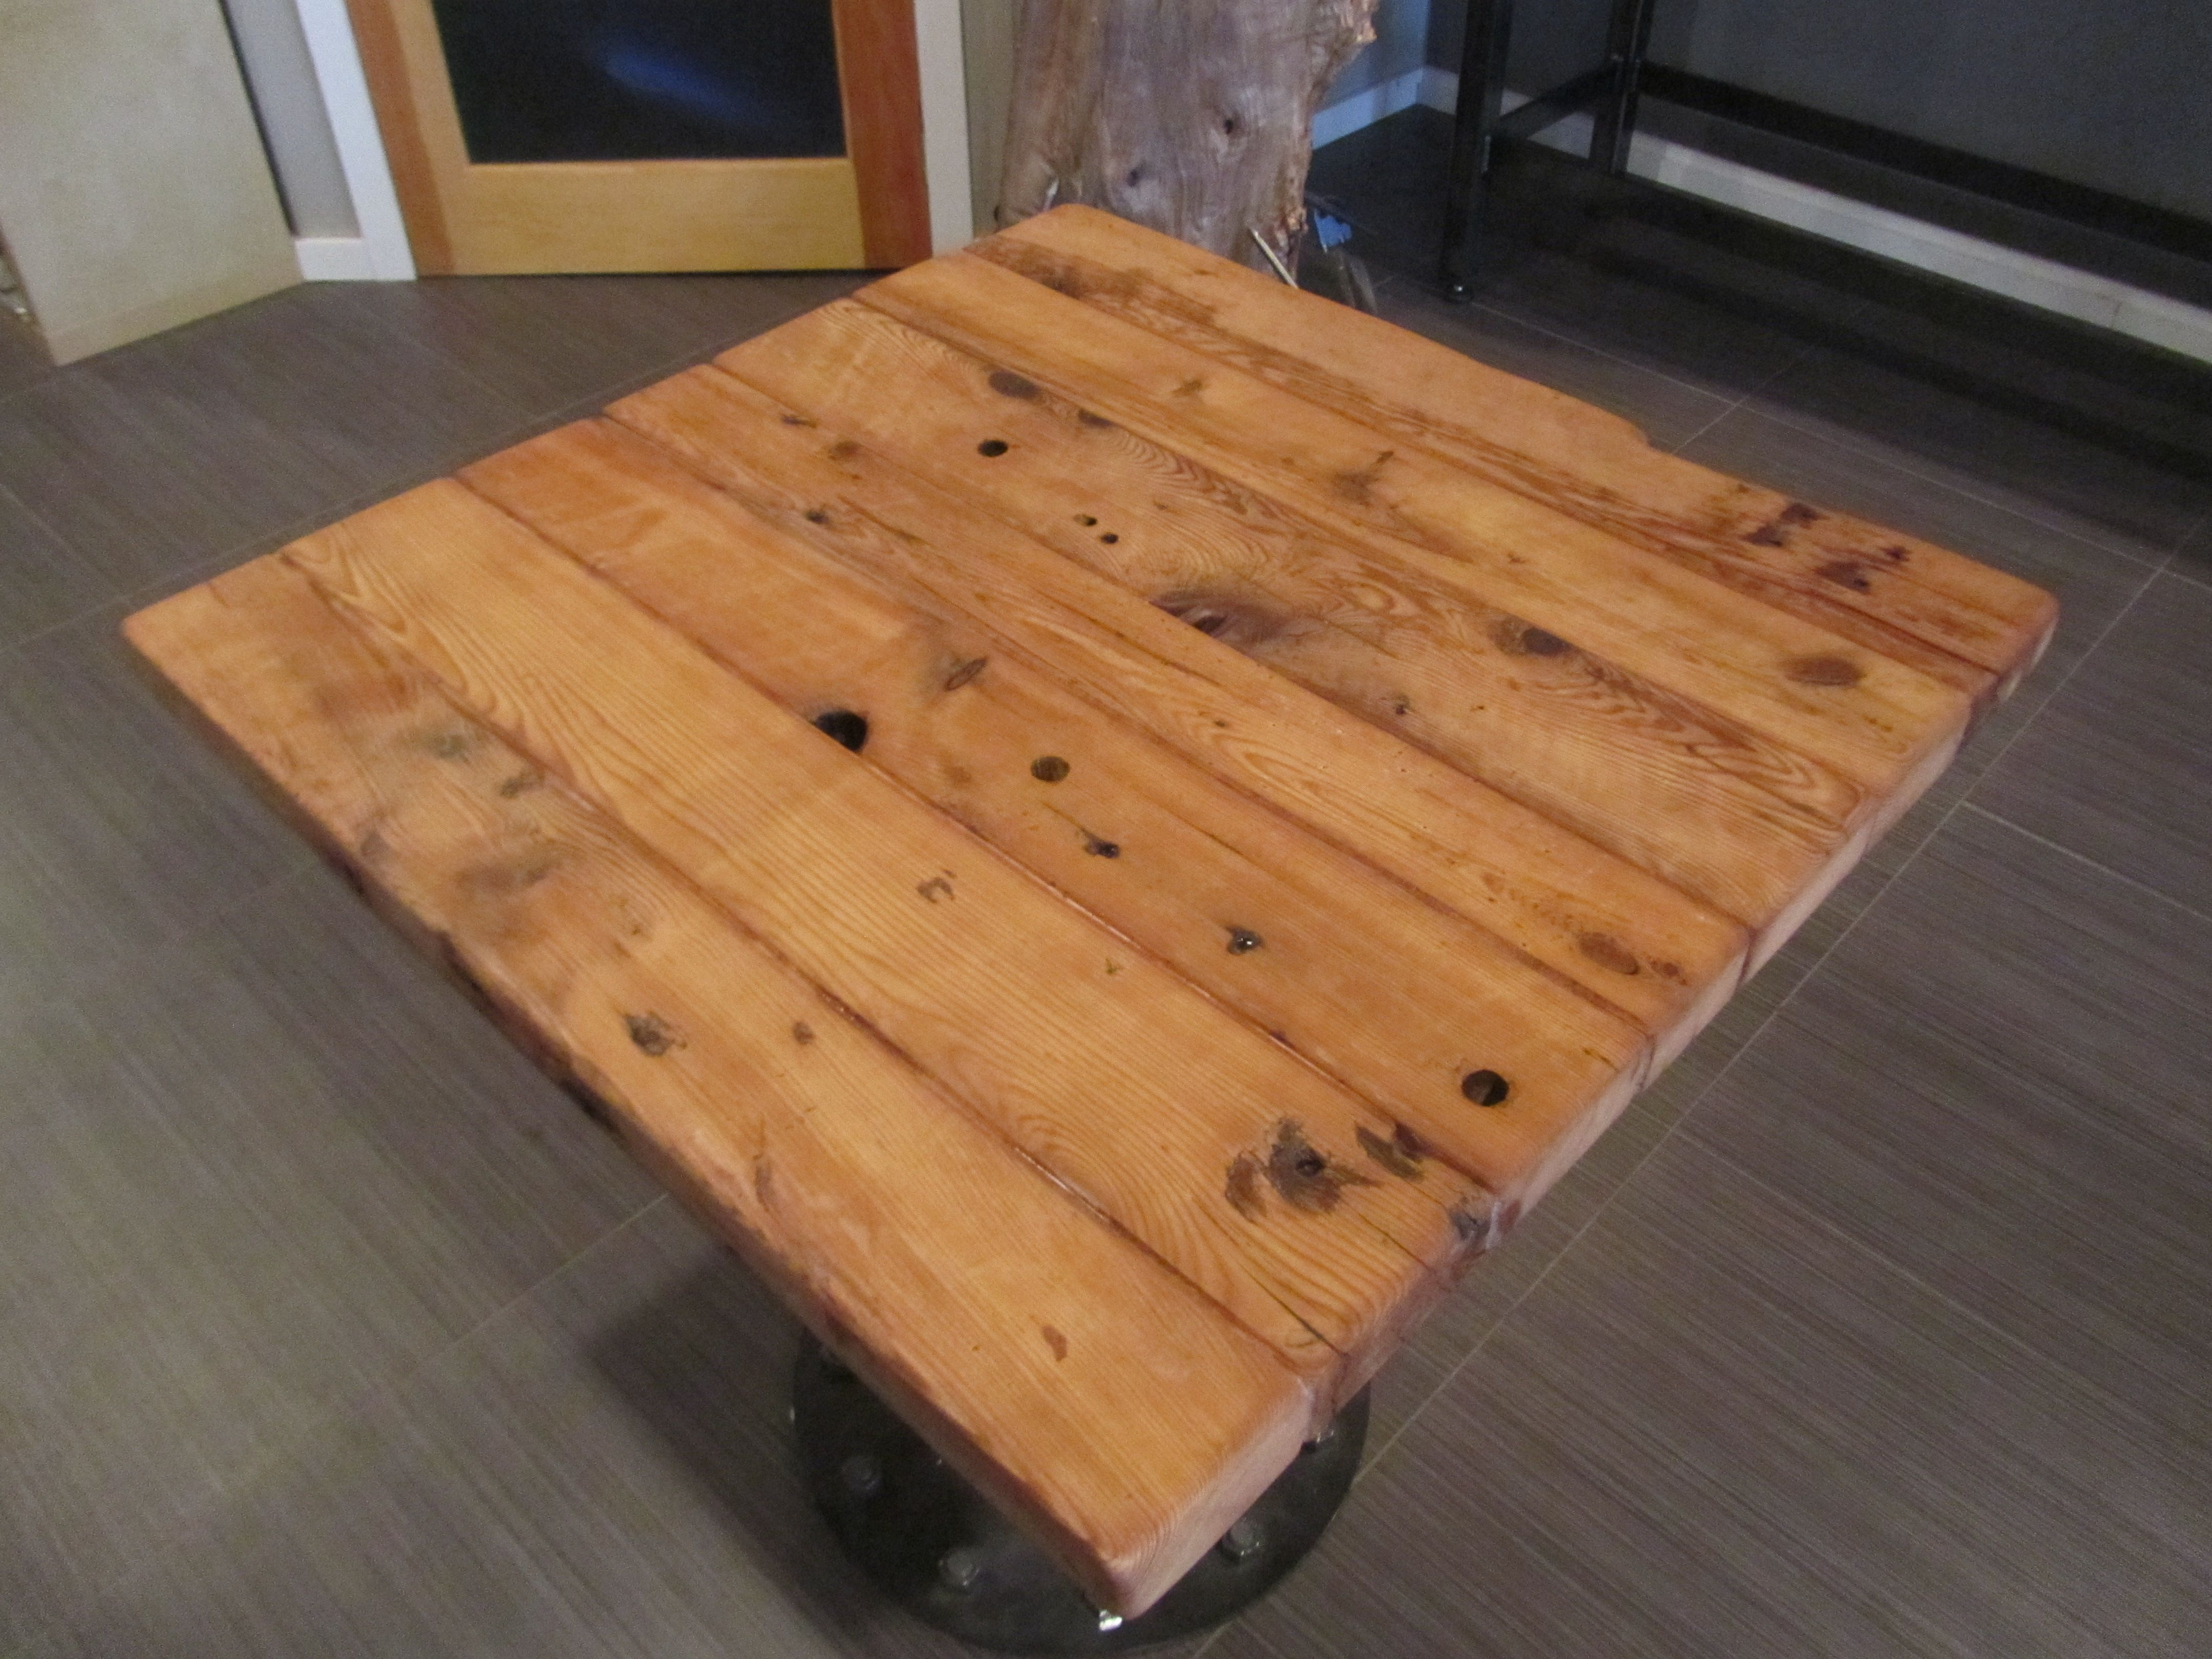 Restaurant Table Reclaimed Pine Top With Round Industrialstyle Base - Restaurant table tops and bases